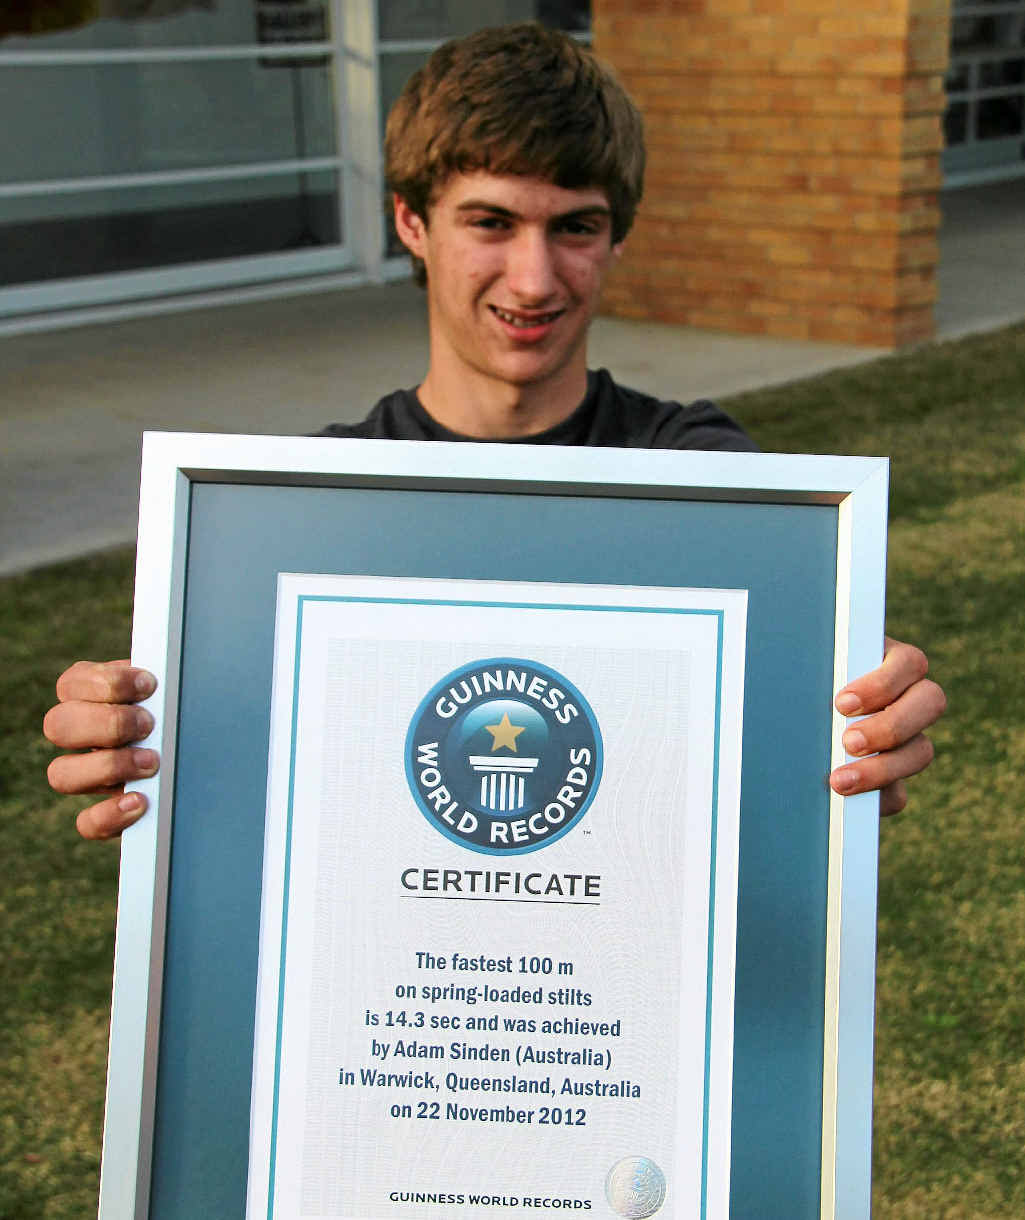 Warwick teenager Adam Sinden has earned himself a spot in the Guinness World Records book for his 100m sprint on jumping stilts.